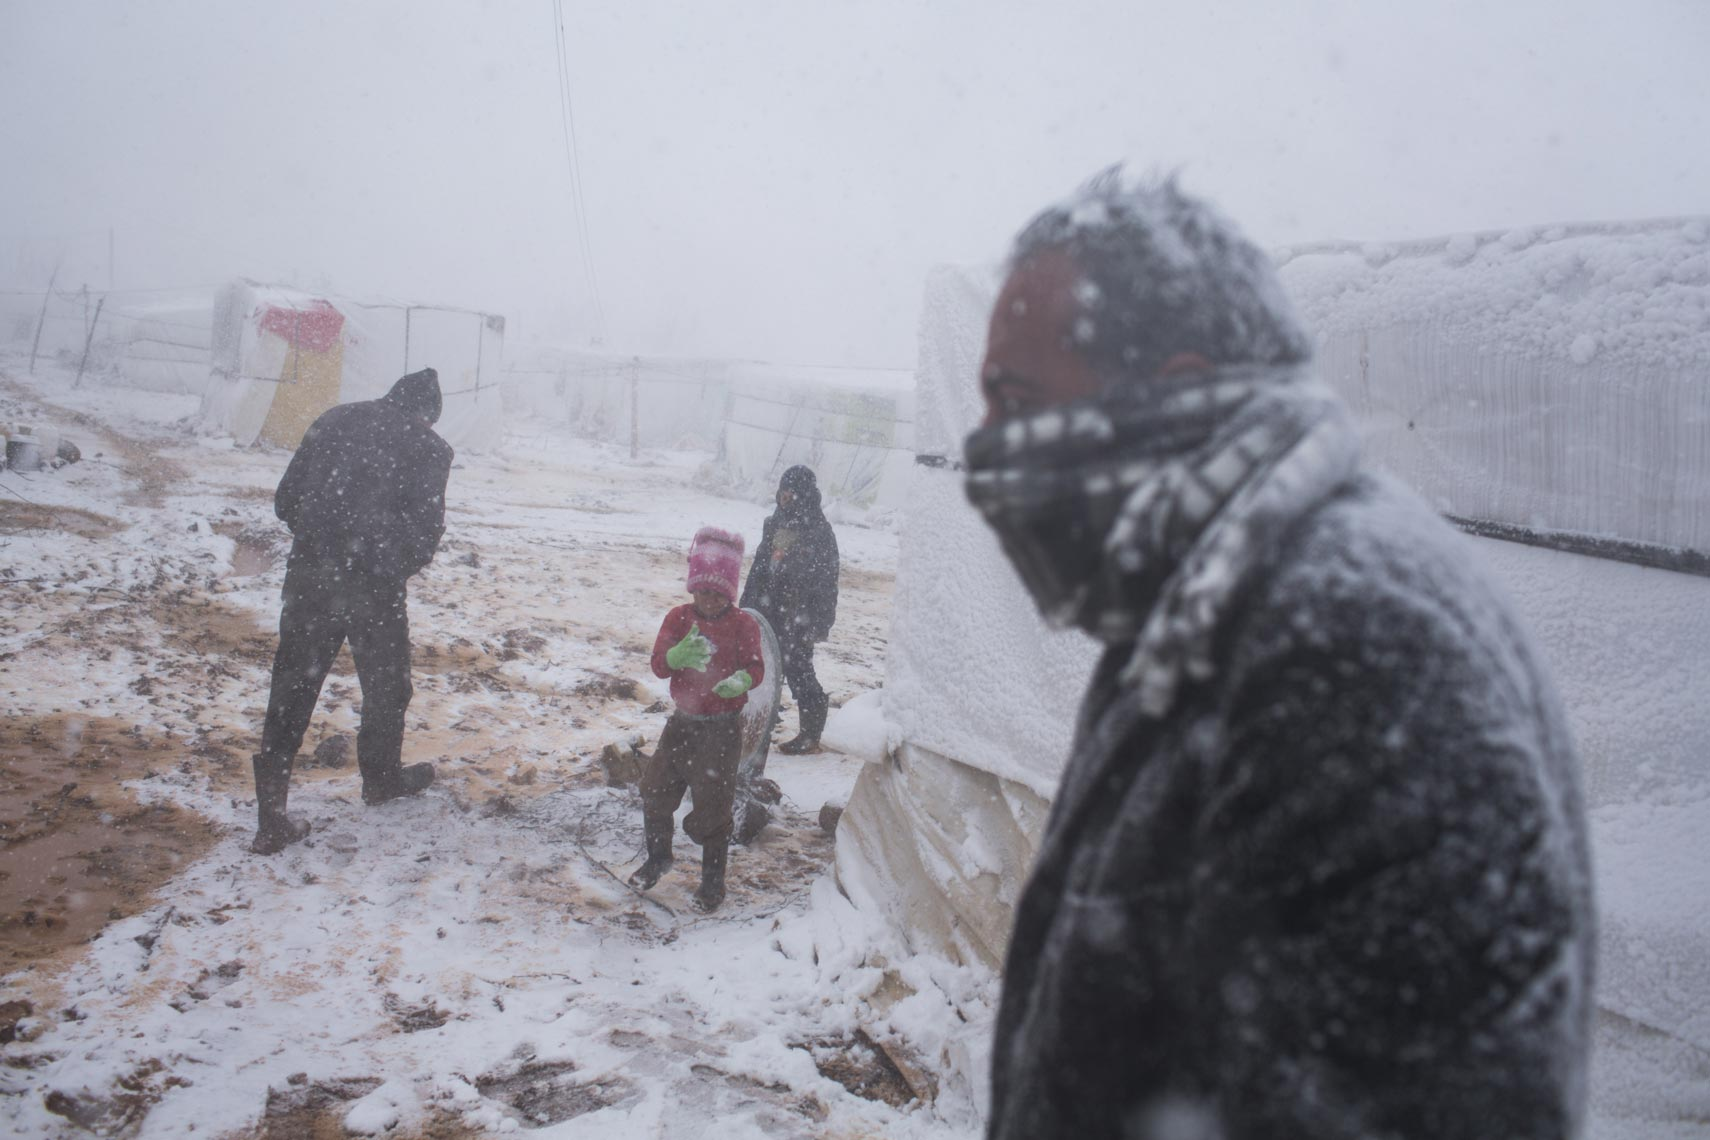 Refugees winter Lebanon